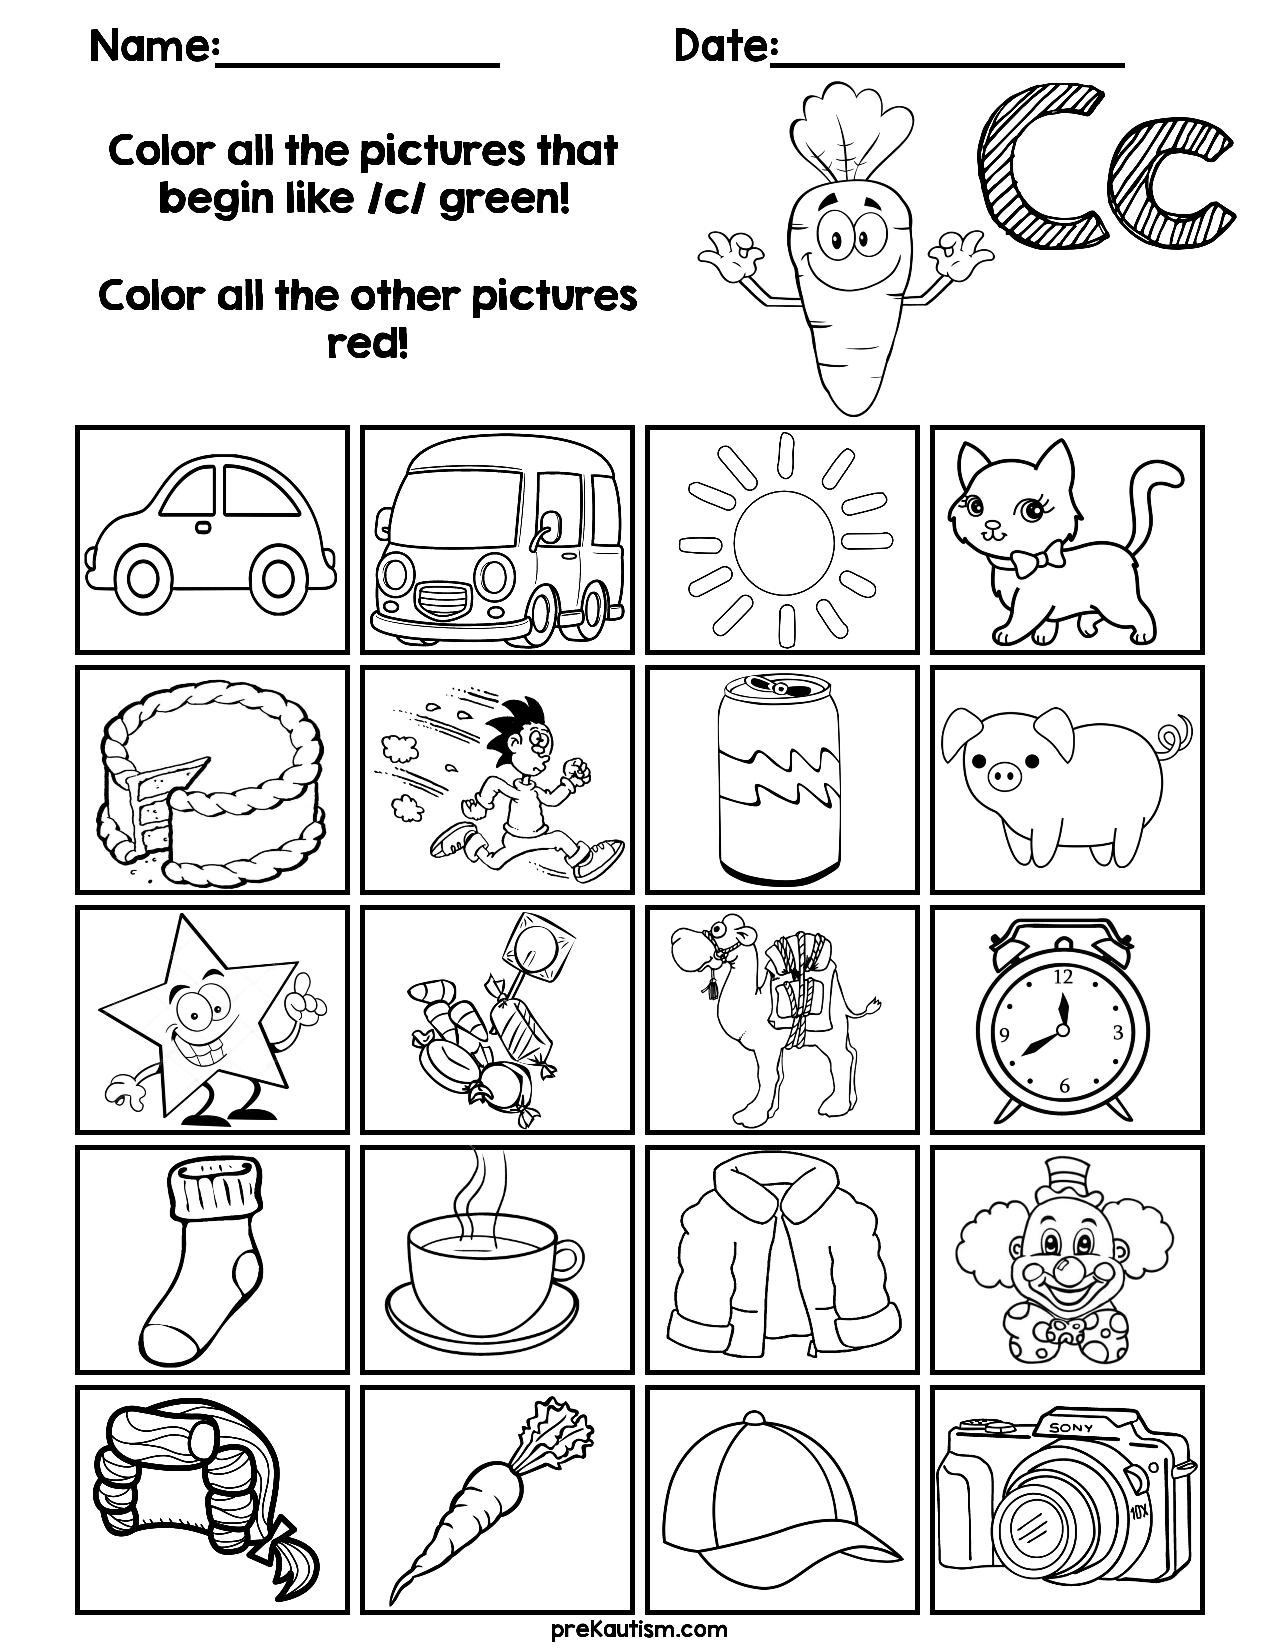 Find & Color Consonants Worksheets | Grade R Worksheets in Letter J Worksheets For Grade 1